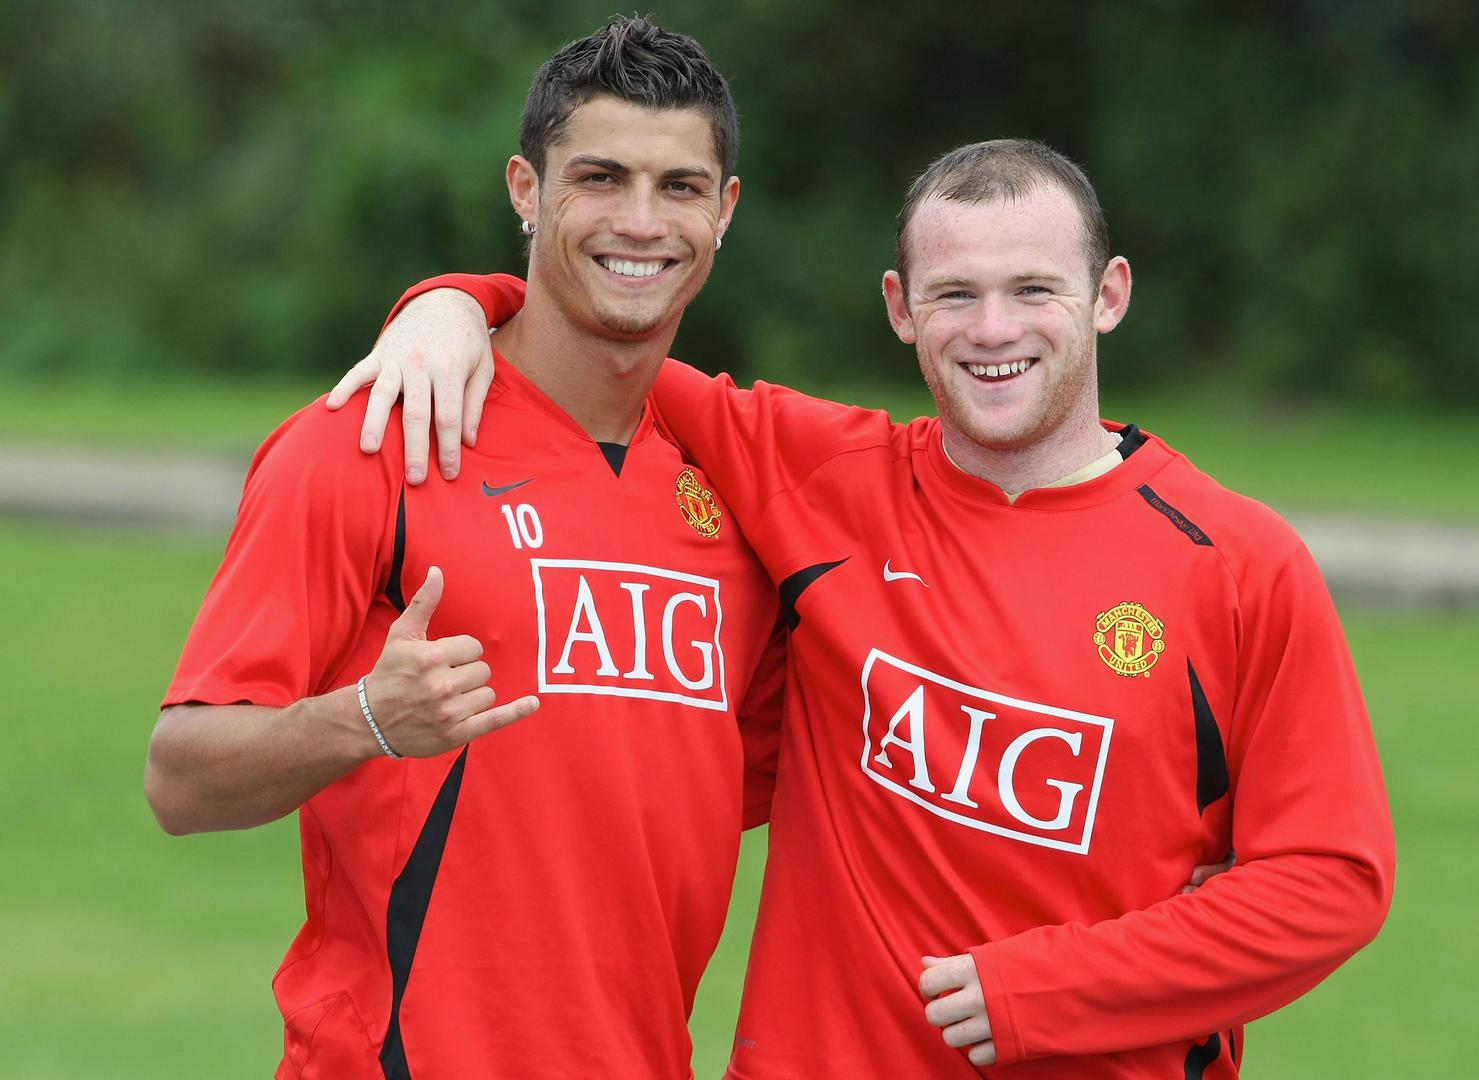 Cristiano Ronaldo and Wayne Rooney in training.